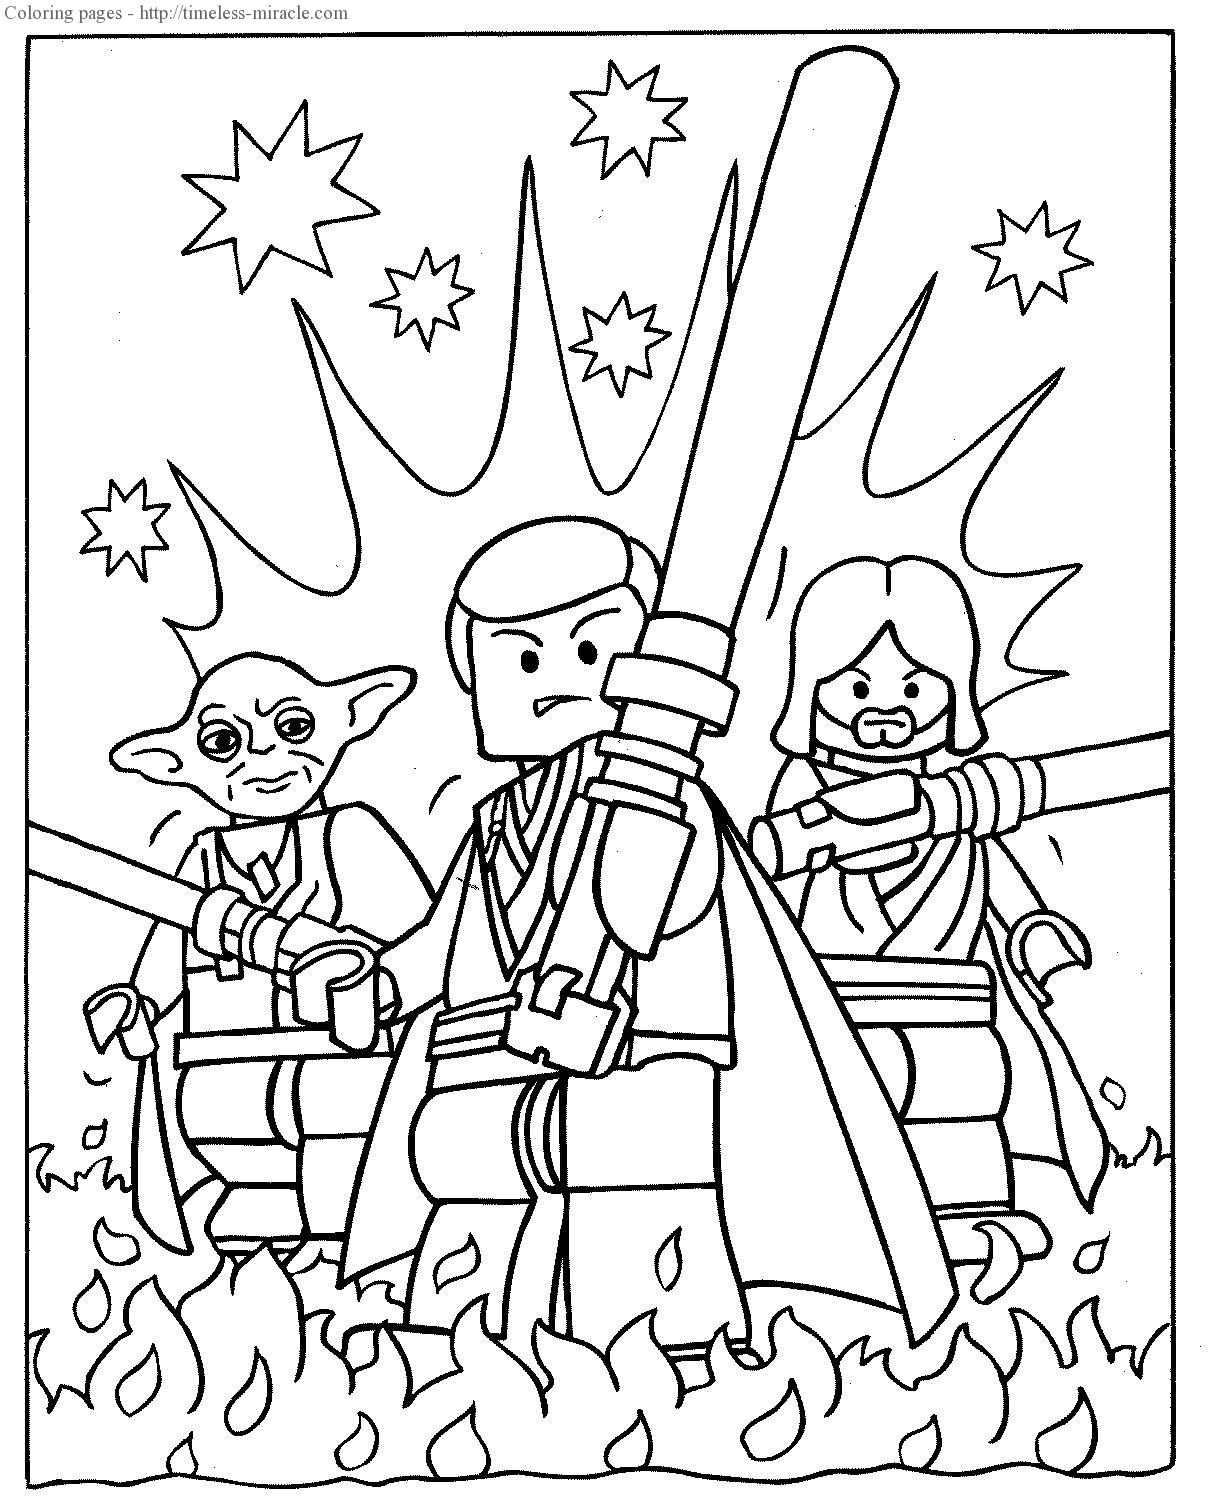 free lego star wars coloring pages lego star wars coloring pages the freemaker adventures pages lego free star wars coloring